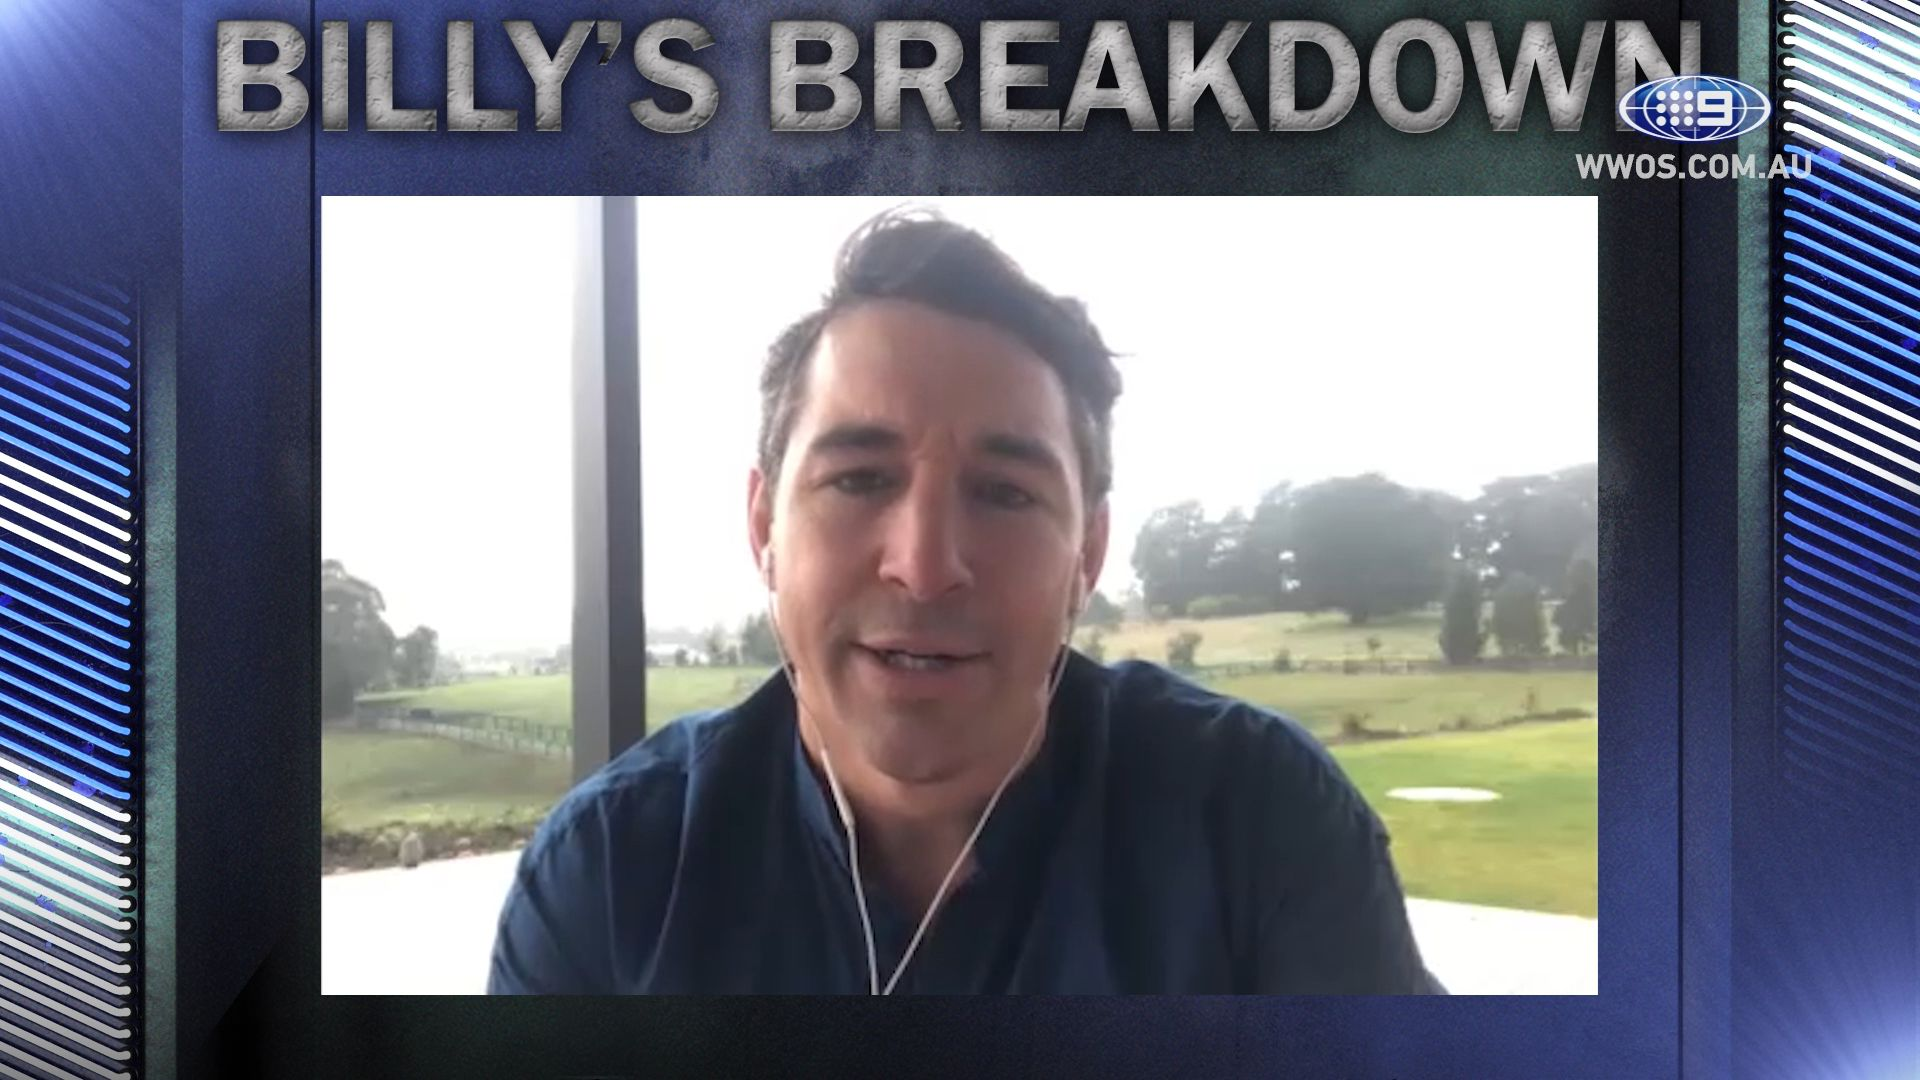 EXCLUSIVE: Why Billy Slater expects new-look Broncos to upset Sharks